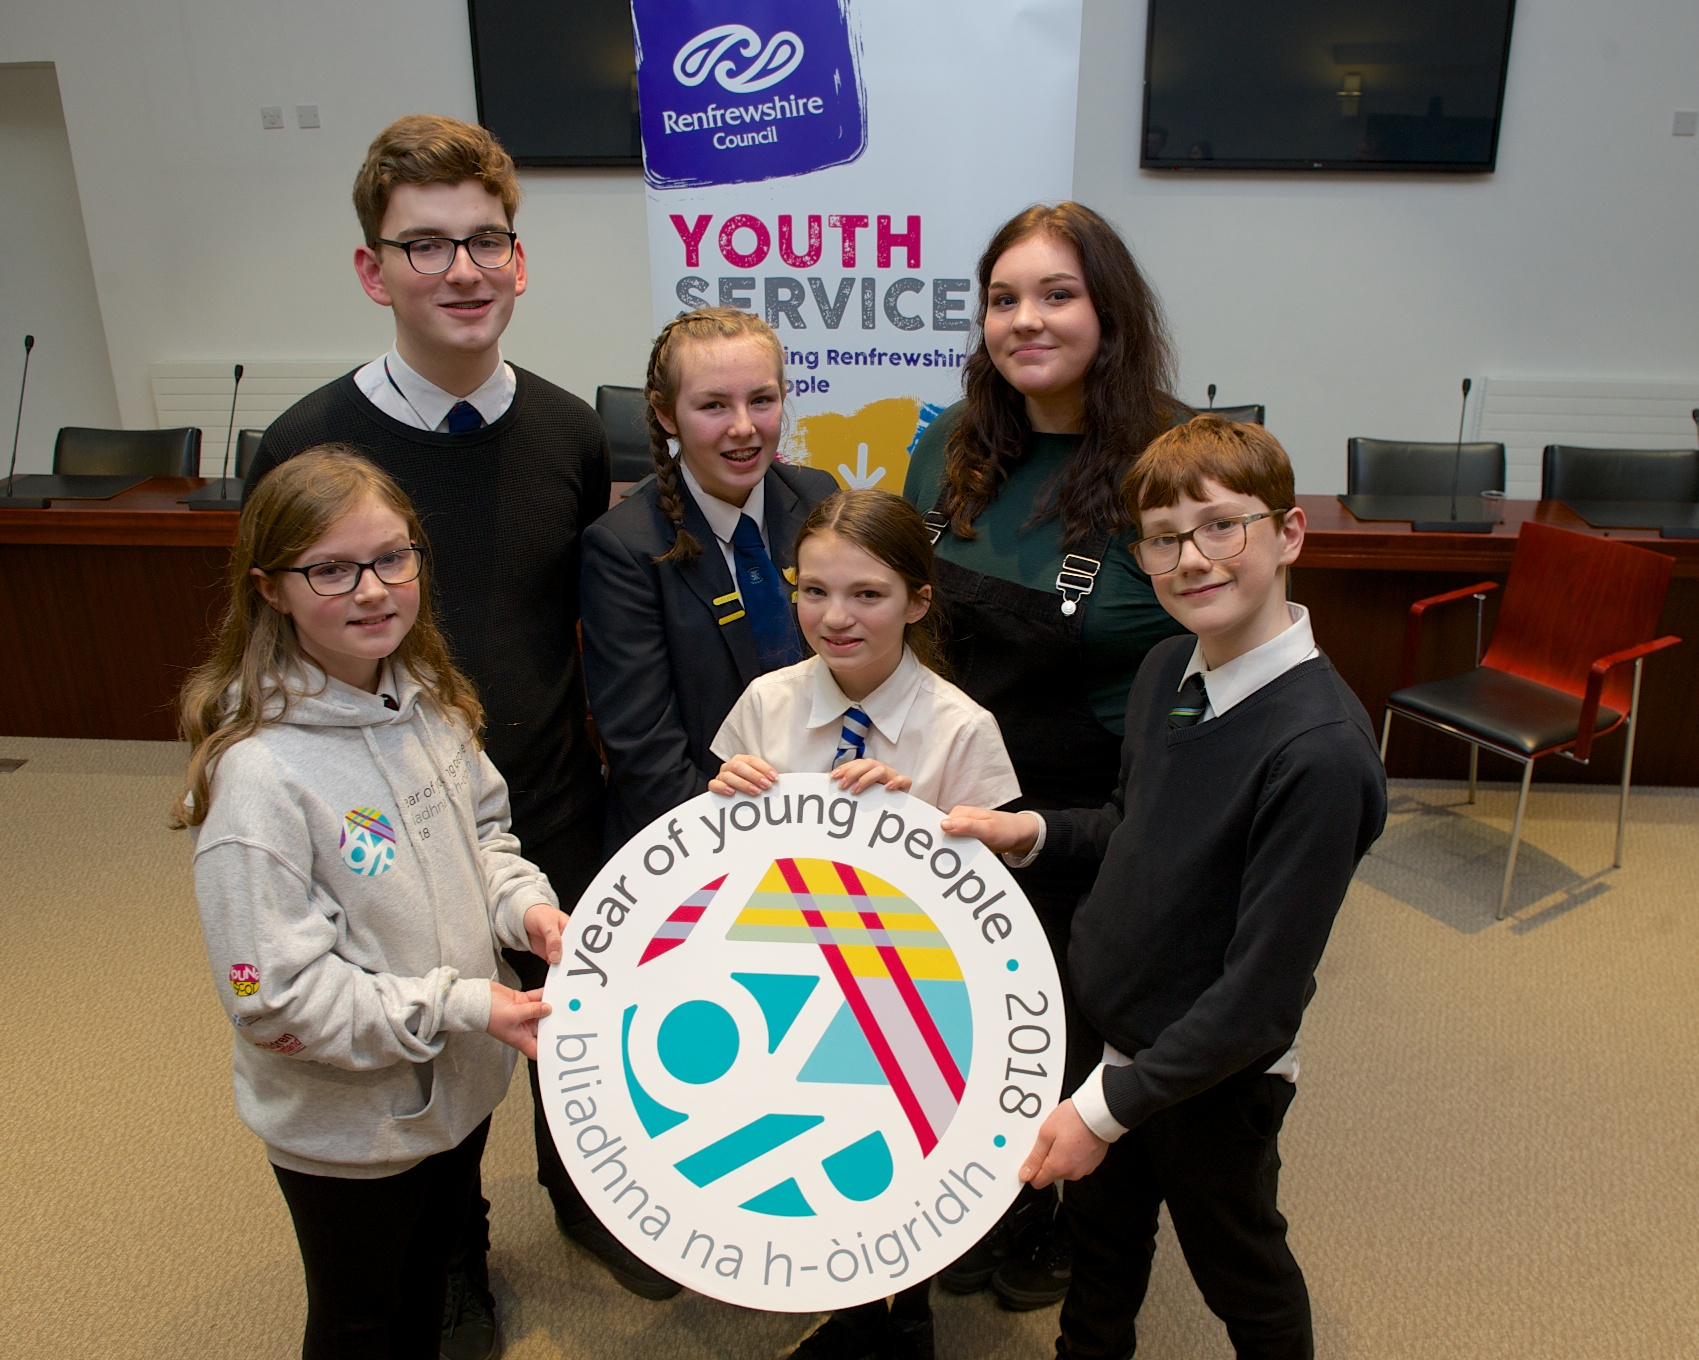 22 Jan 2018 - YOYP ambassadors - Youth ambassadors with logo - JCON